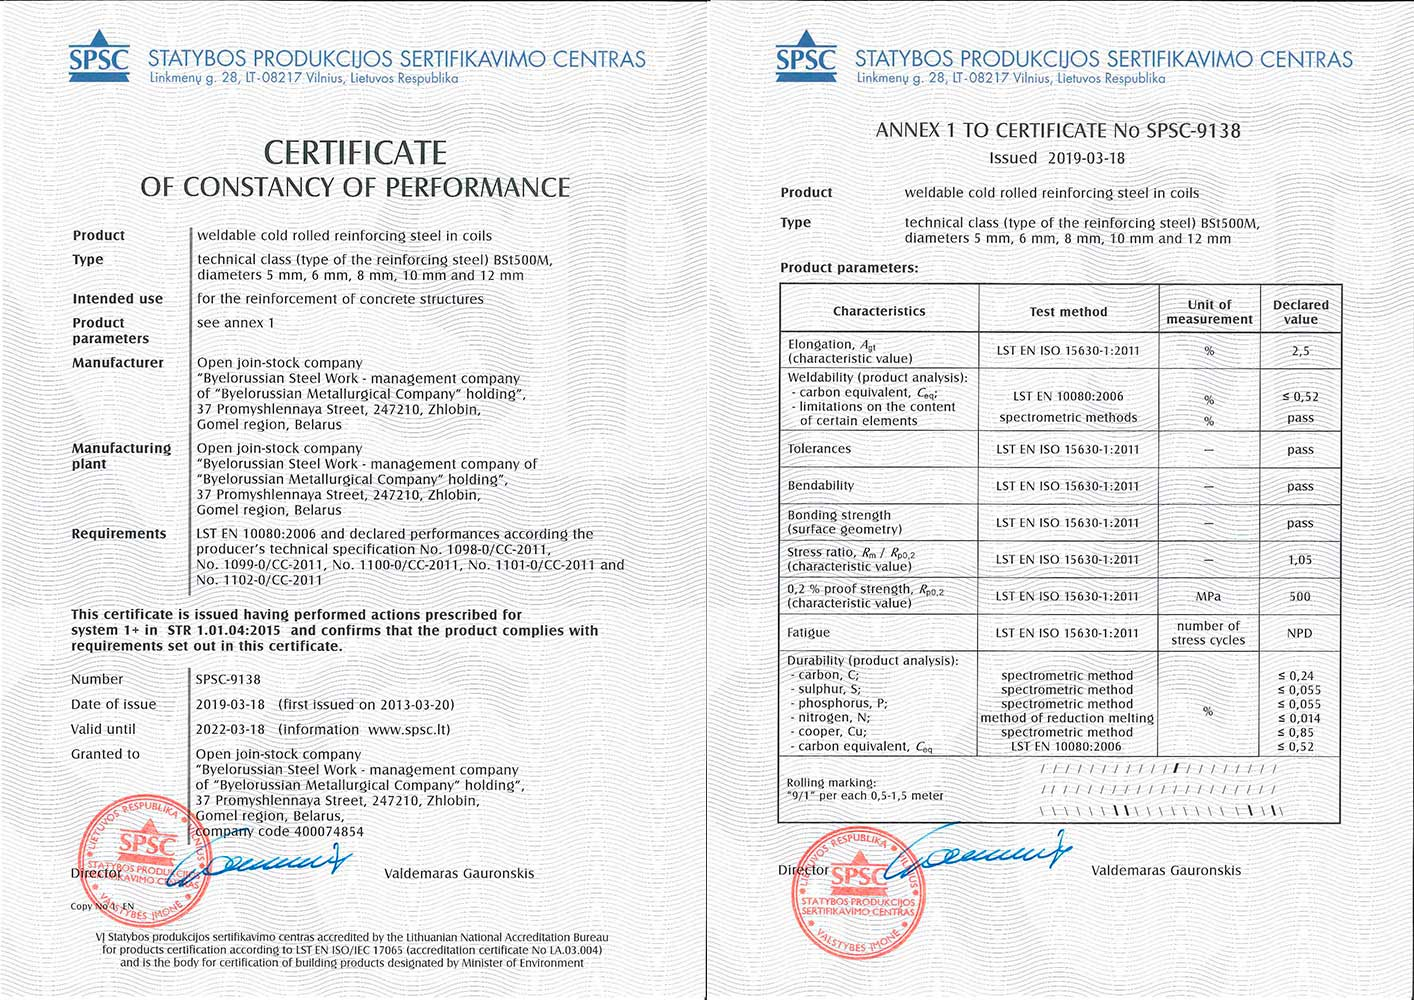 Certificate«SPSC», Lithuania, No. SPSC-9138 for production of weldable cold-deformed reinforcing steel in coils BSt500M Ø 5,6,8,10,12 mm in conformity with standard LST EN 10080:2006 and producer's technical specifications No.1098-0/CC-2011, No.1099-0/CC-2011, No.1100-0/CC-2011, No.1101-0/CC-2011, No.1102-0/CC-2011